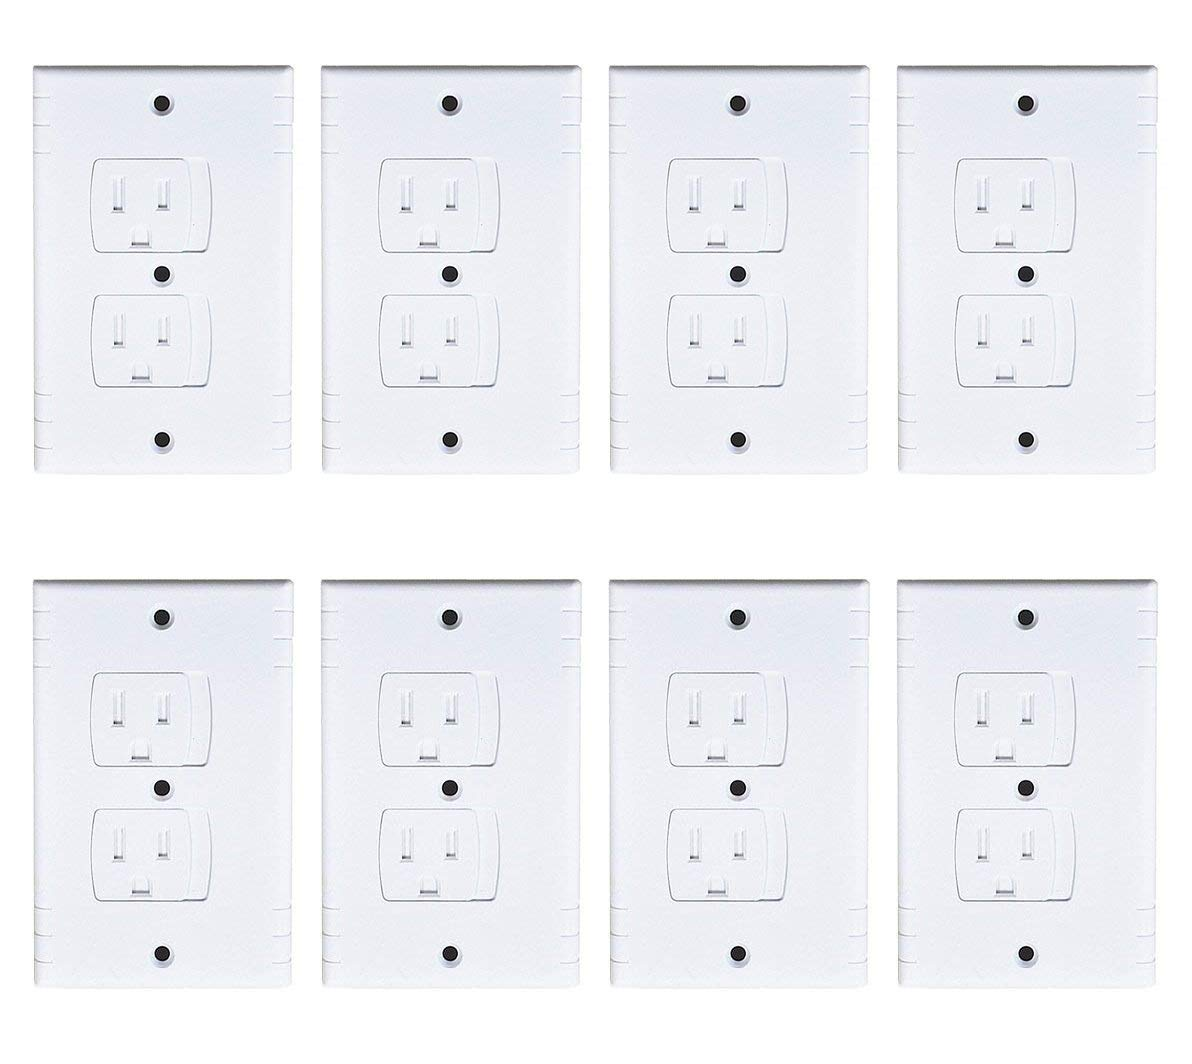 A&S Creavention Self Closing Electrical Wall Outlet Covers, Child Proof Safety Universal Wall Socket Plugs, Automatic Sliding Cap Cover Standard Wall Outlet Plate (8 Pack) by A&S Creavention